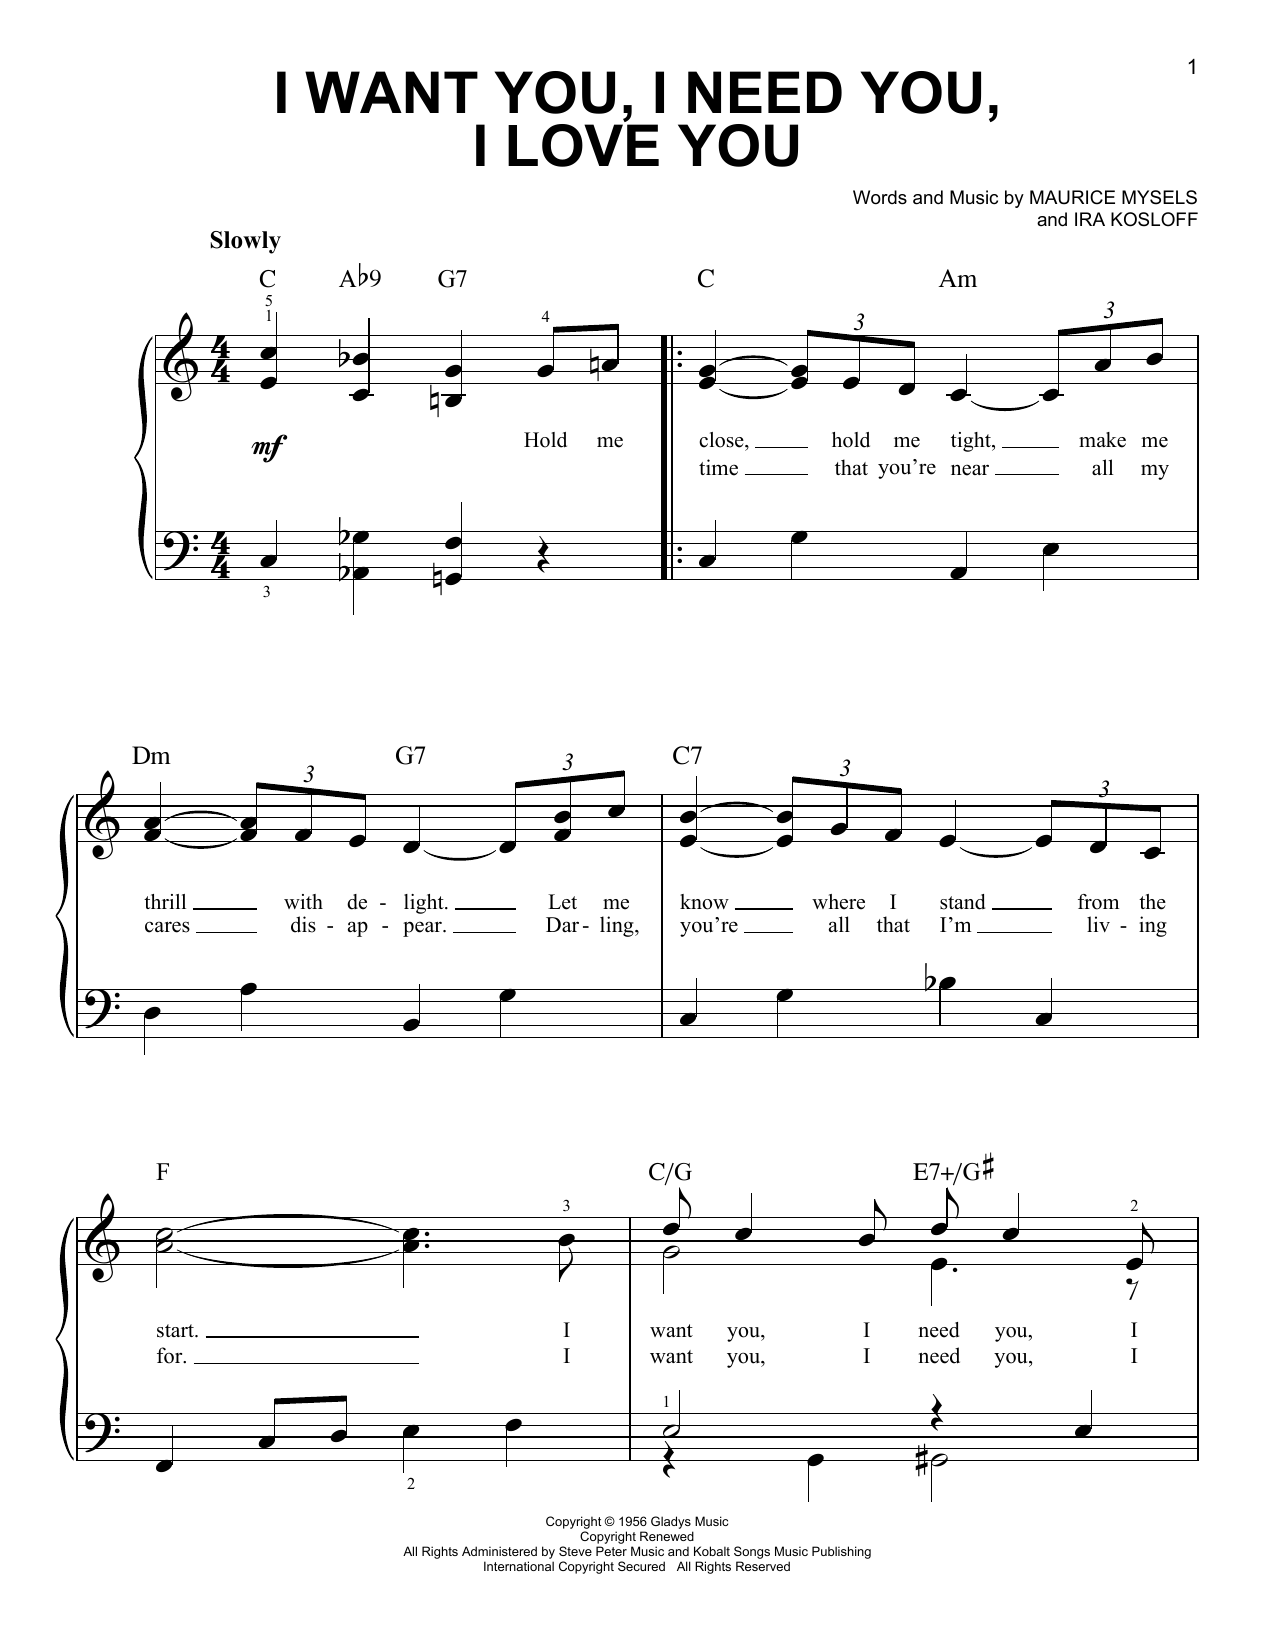 I Want You, I Need You, I Love You Sheet Music